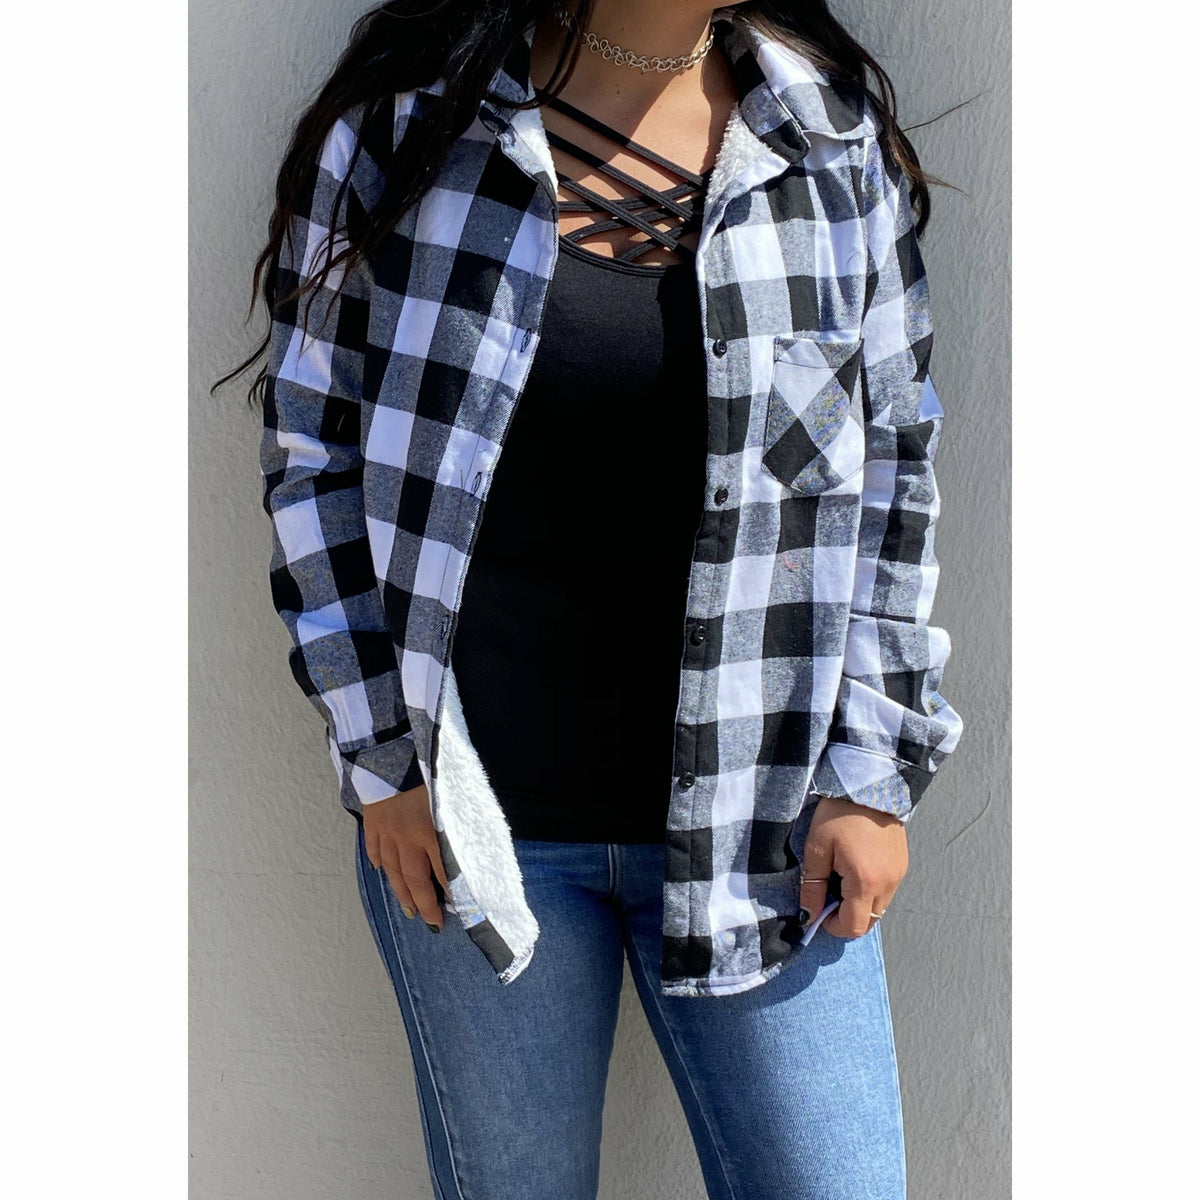 White/Black Buffalo Plaid lined Flannel (regular & Plus)